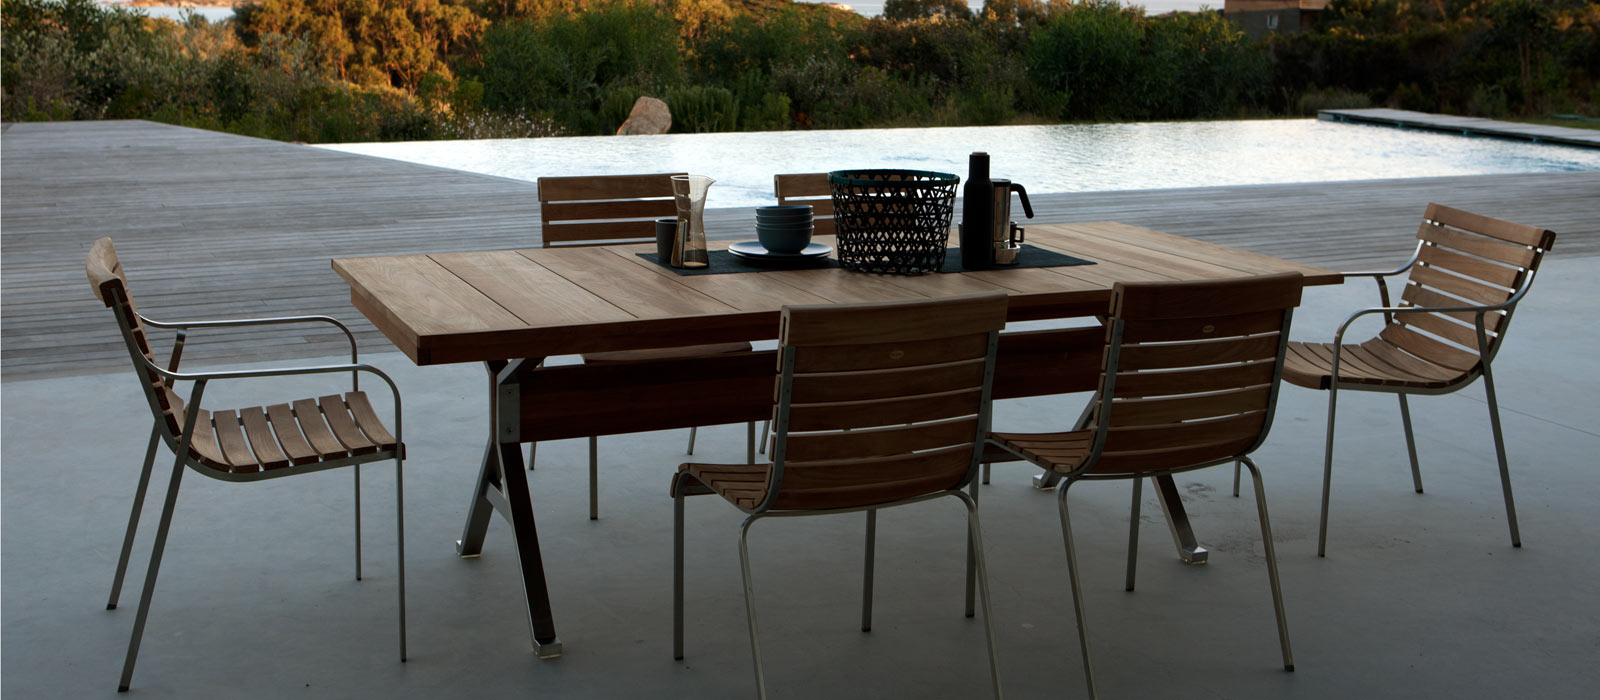 Outdoor Dining Table Designs 24